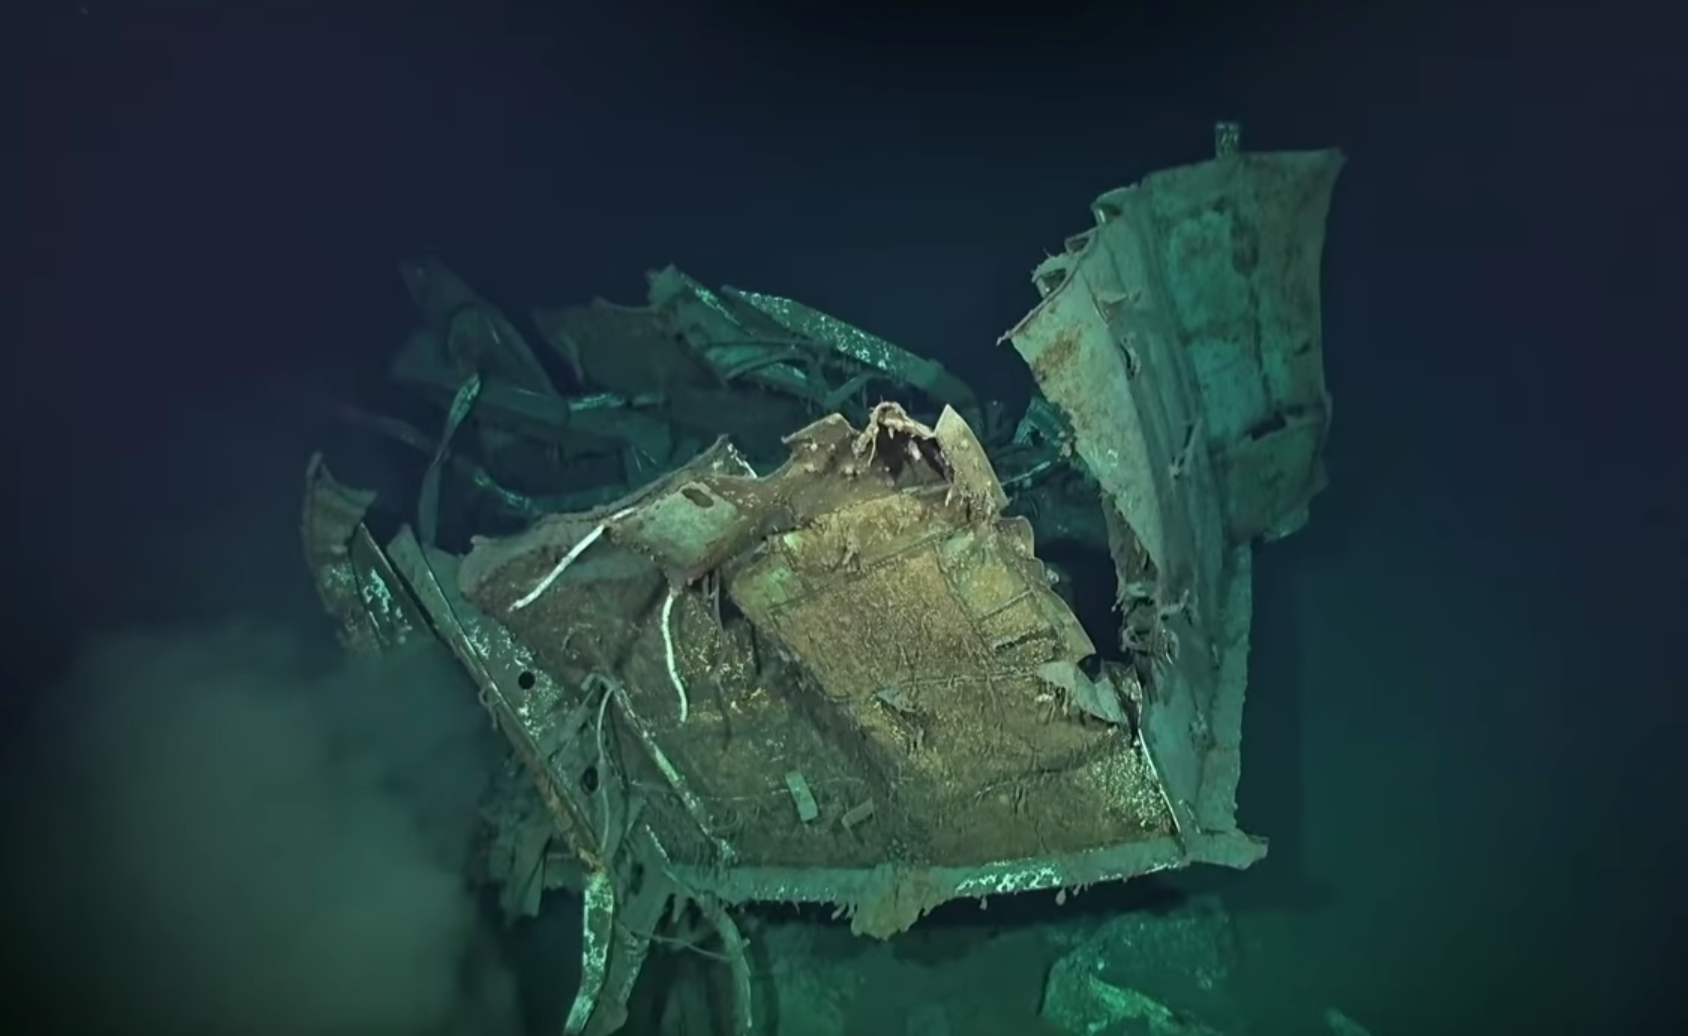 USS Johnston, Deepest Shipwreck Ever Found, Discovered in Philippine Sea